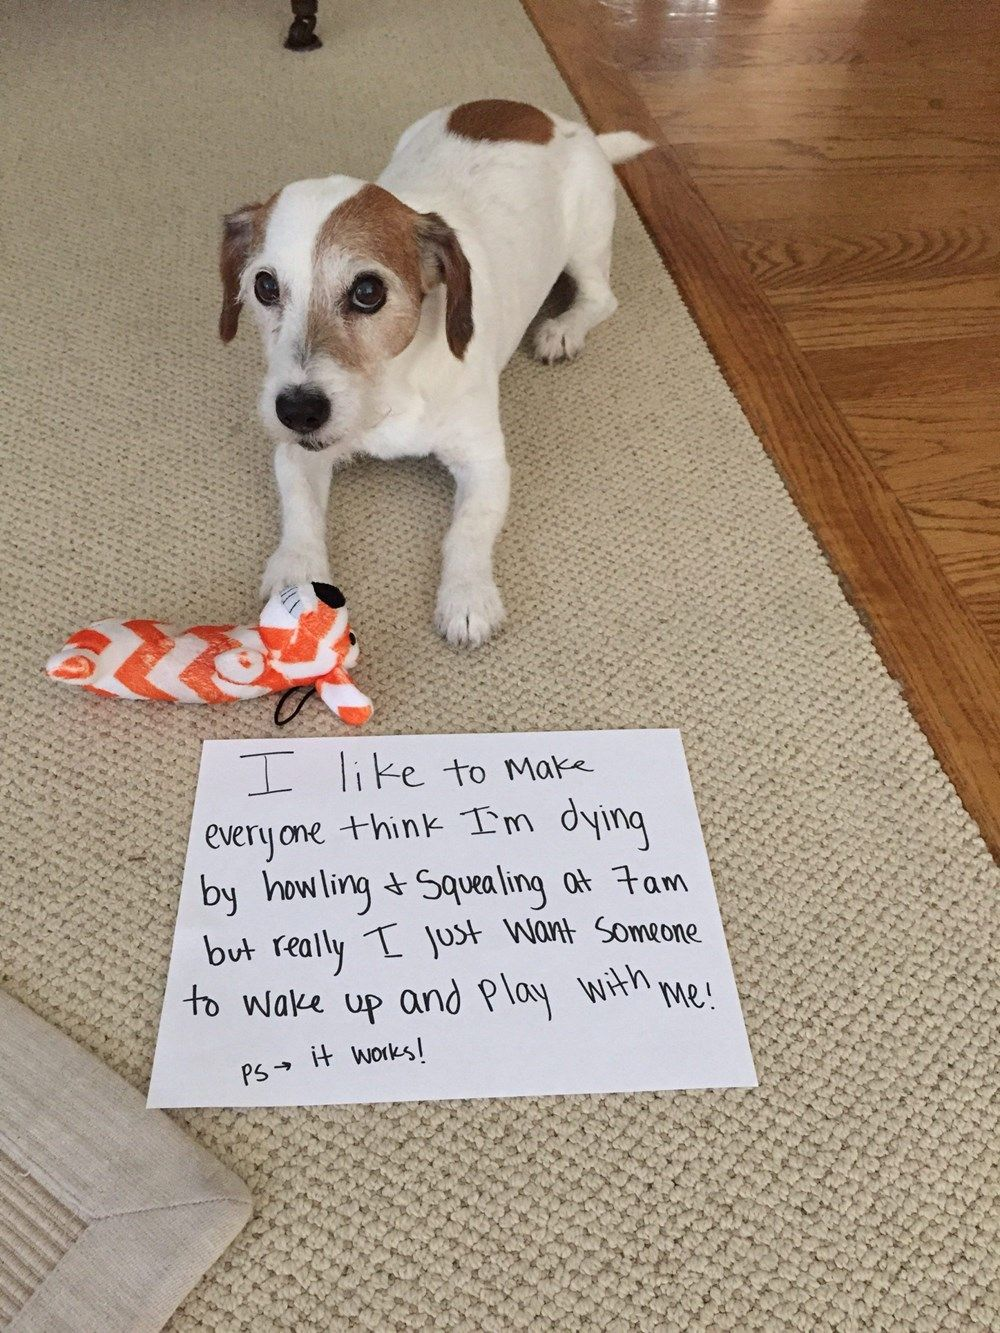 30 Of the Best Dog Shaming Photos From 2017 - I Can Has Cheezburger?